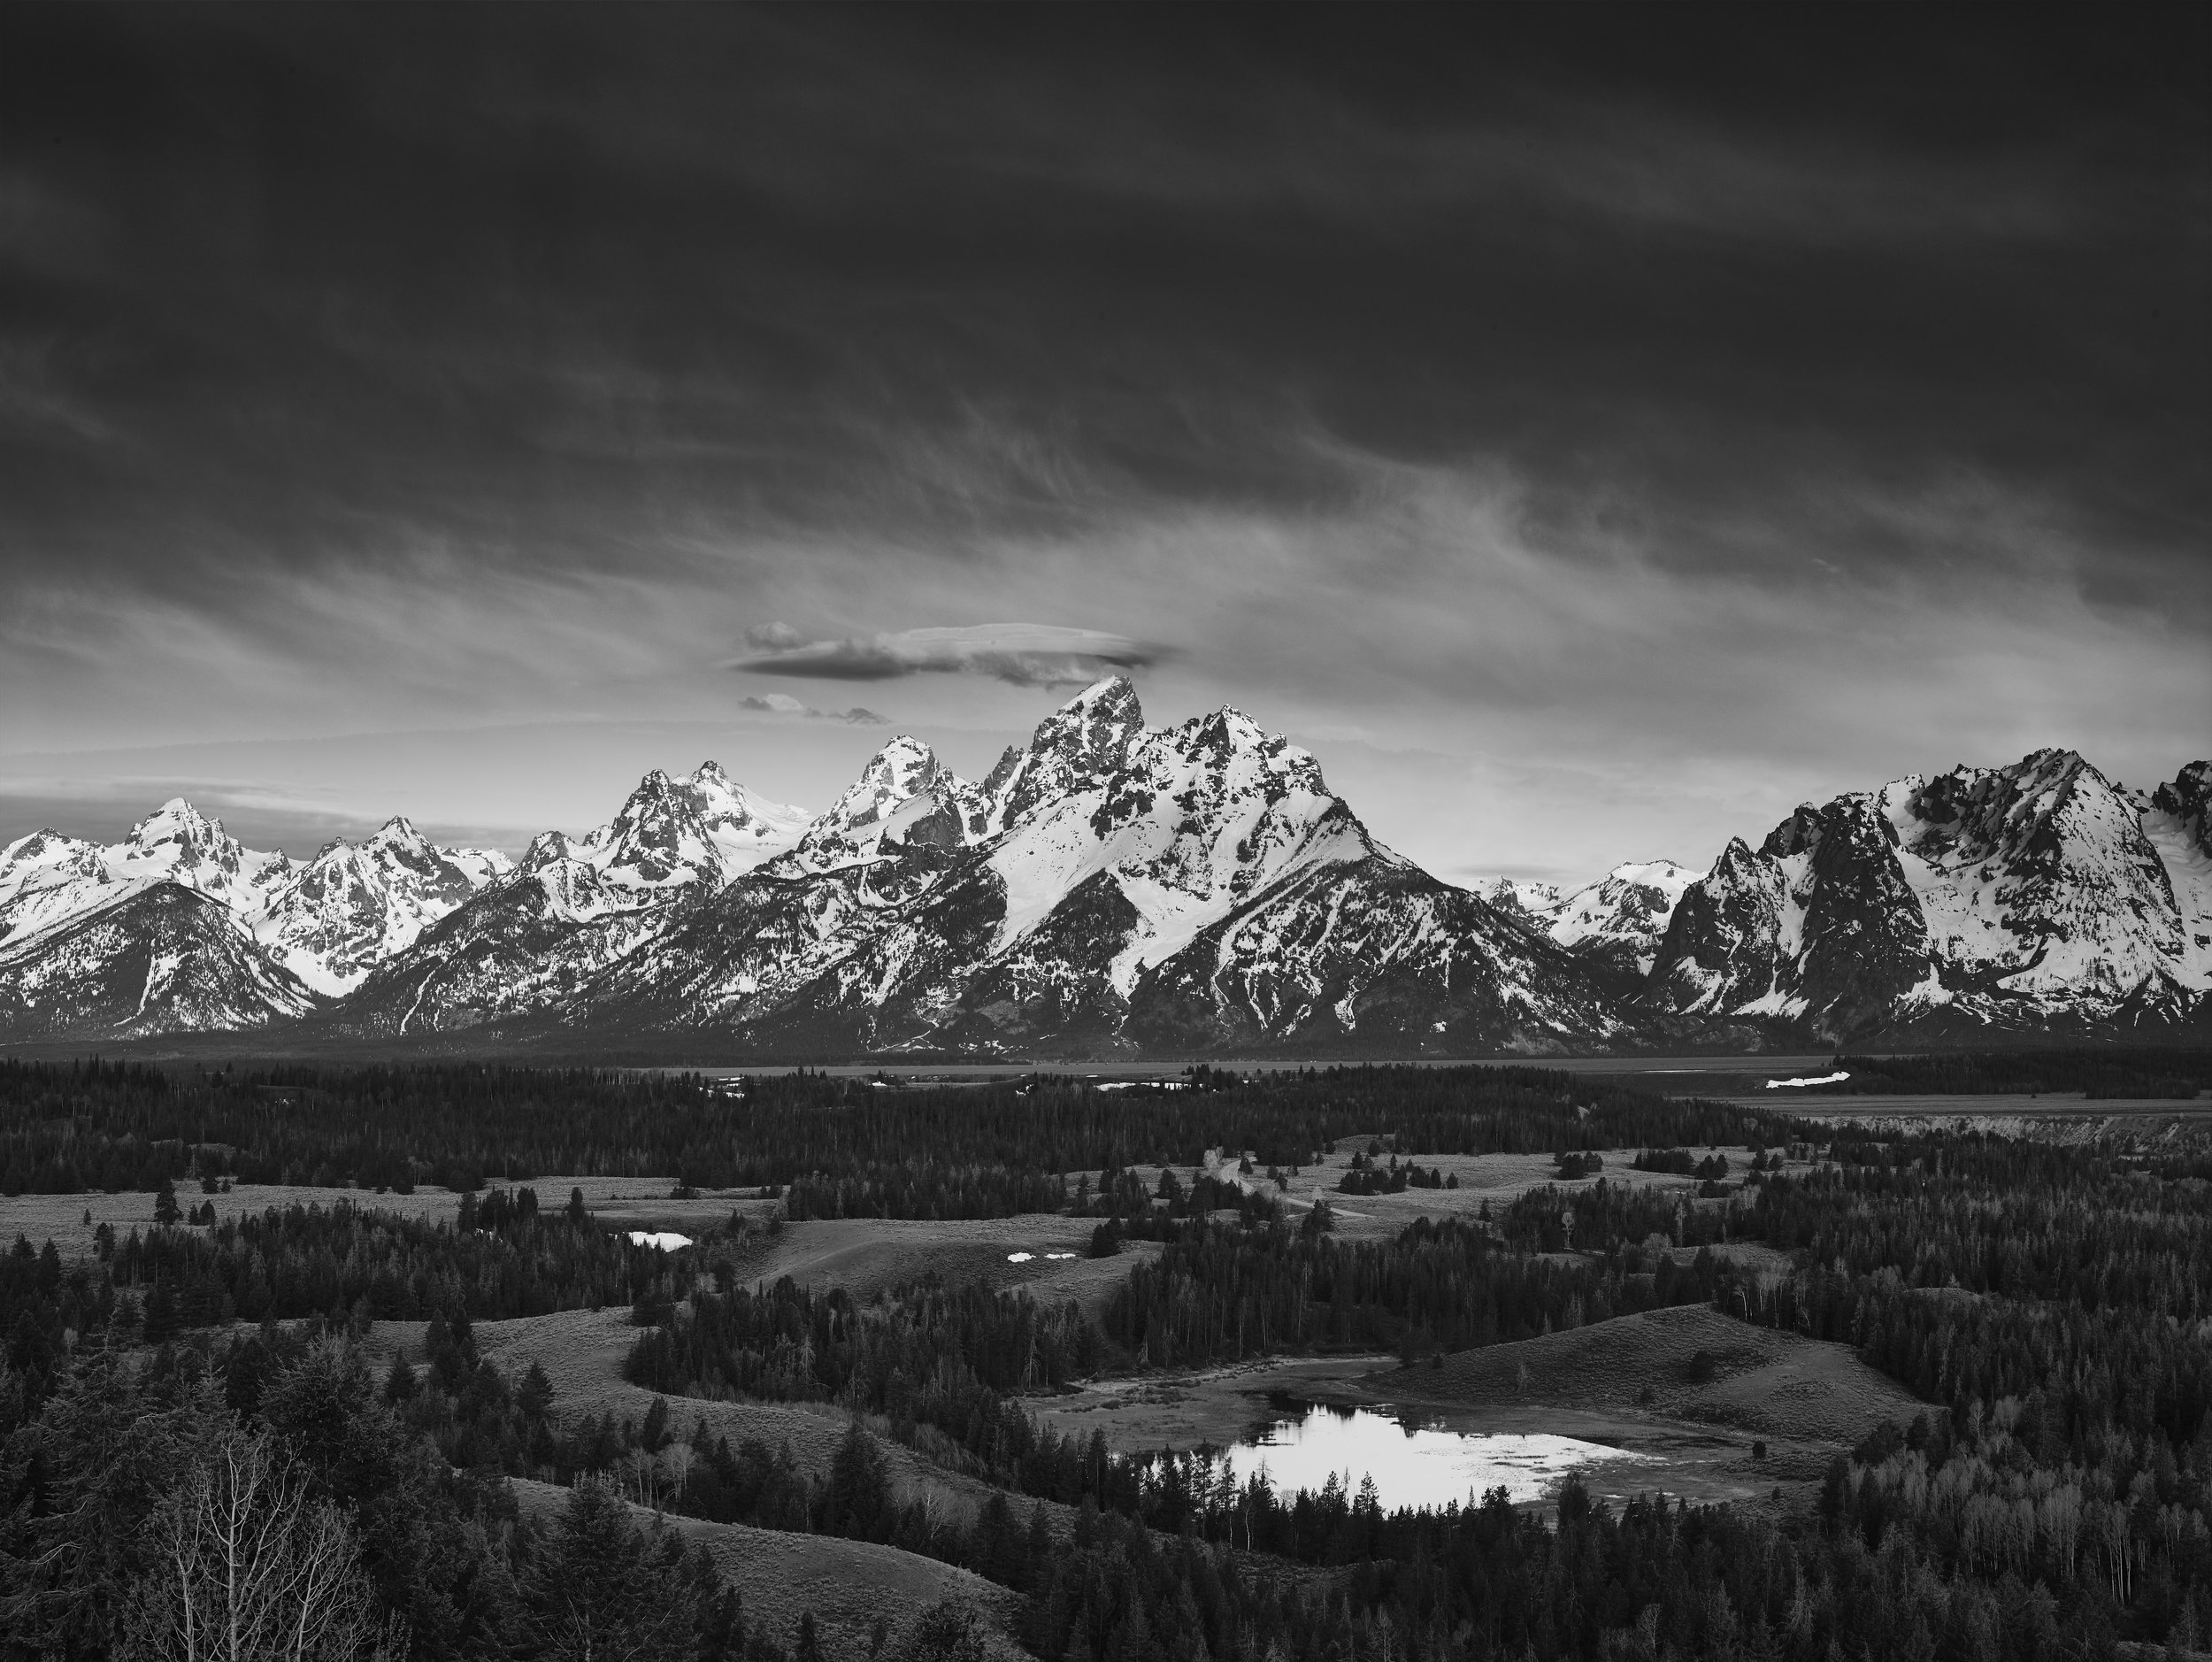 The 3-stop ND filter balances the luminosity of the sky to the terrain almost perfectly and draws the viewer's eye to the mountain range.